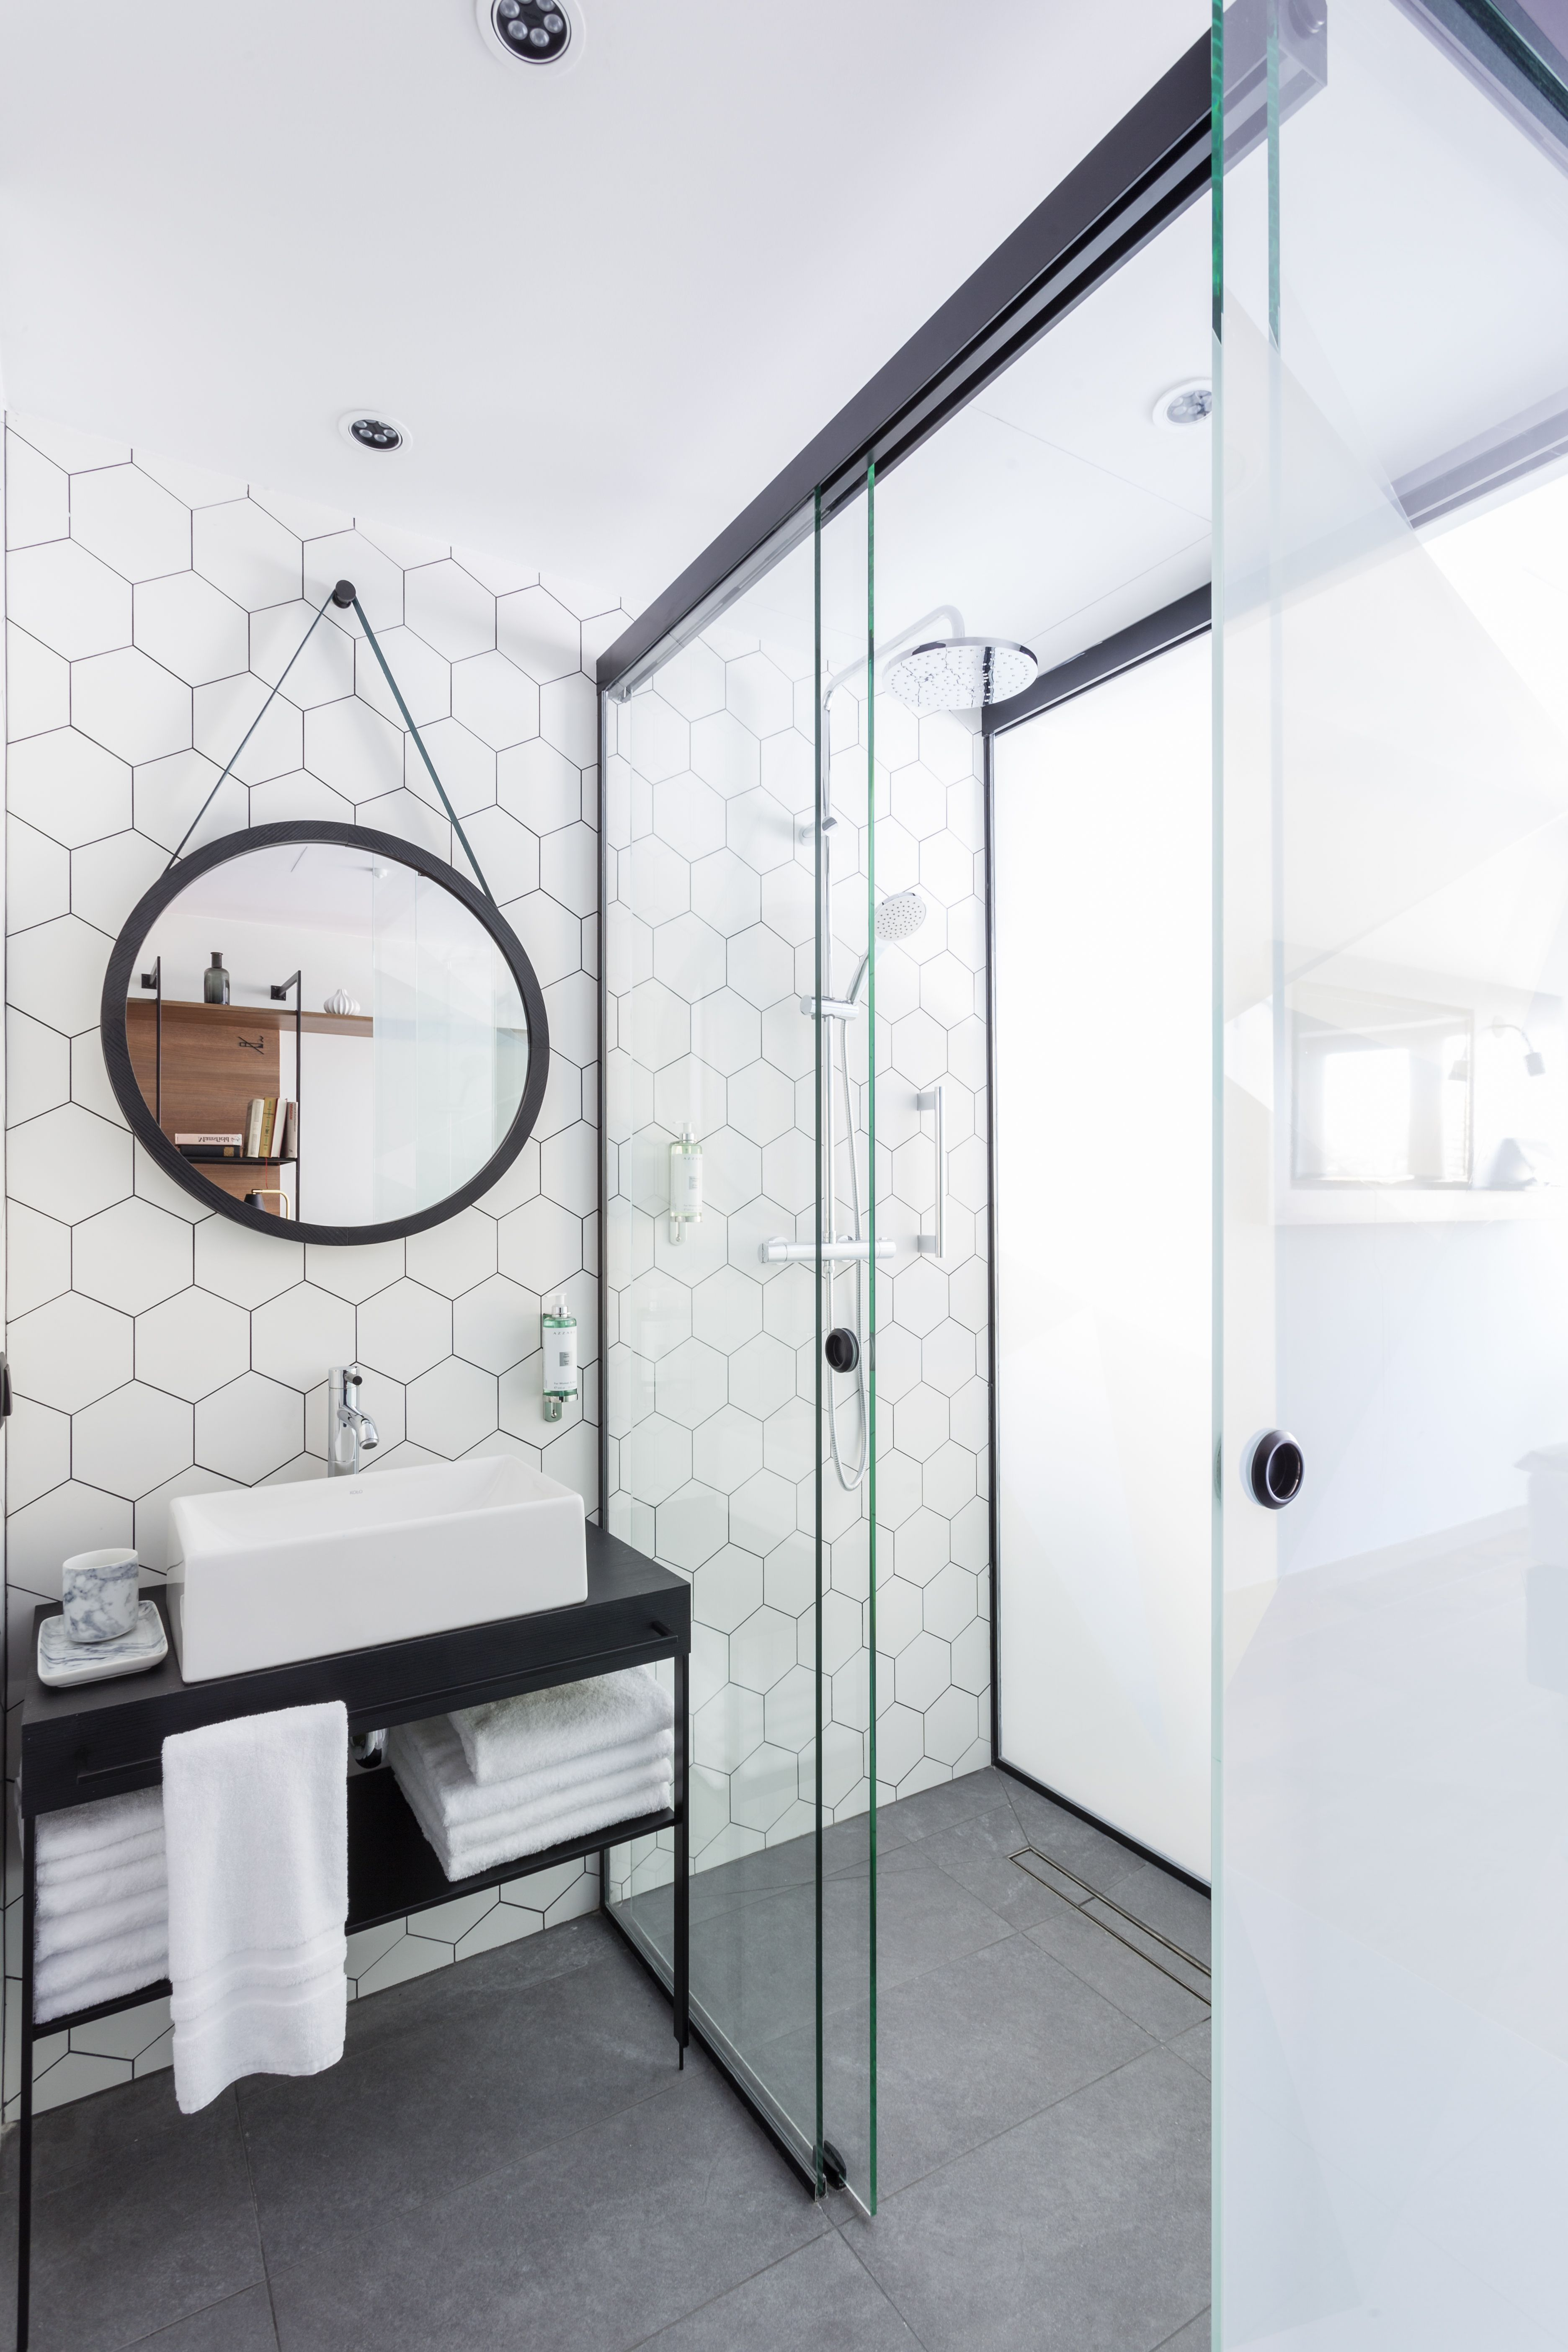 Hex-cellent: Jump on the hexagon decor trend | Honeycombs, Jacuzzi ...